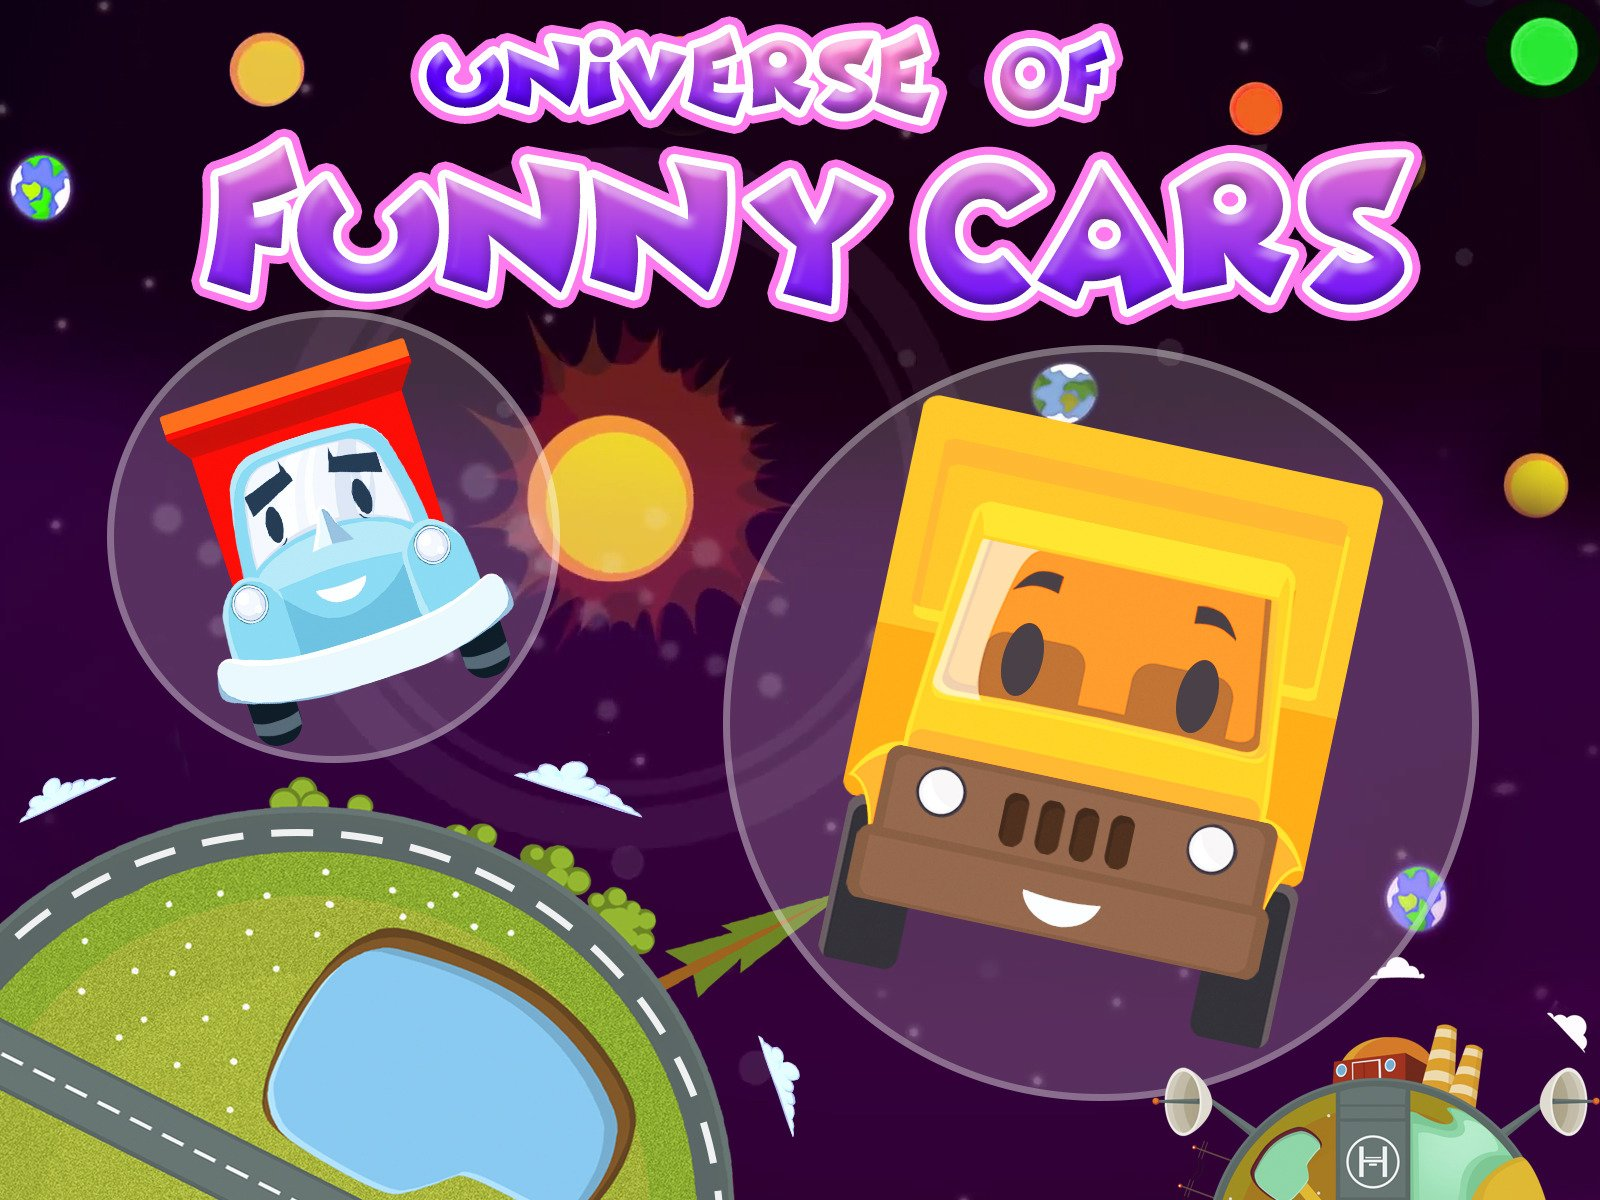 Universe of Funny Cars - Season 1